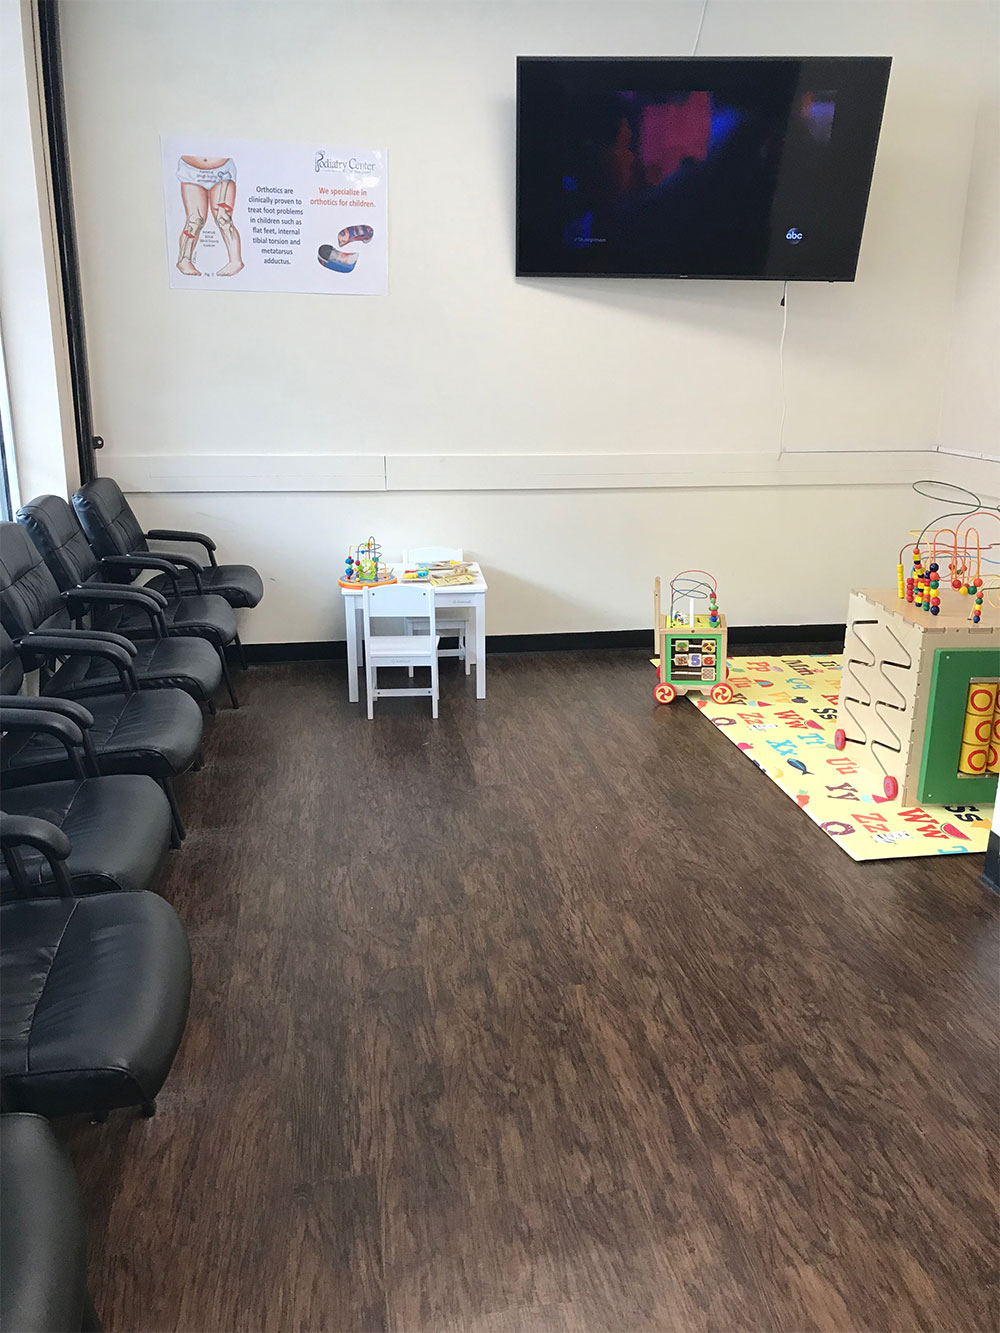 Passaic Podiatrist Waiting Kids